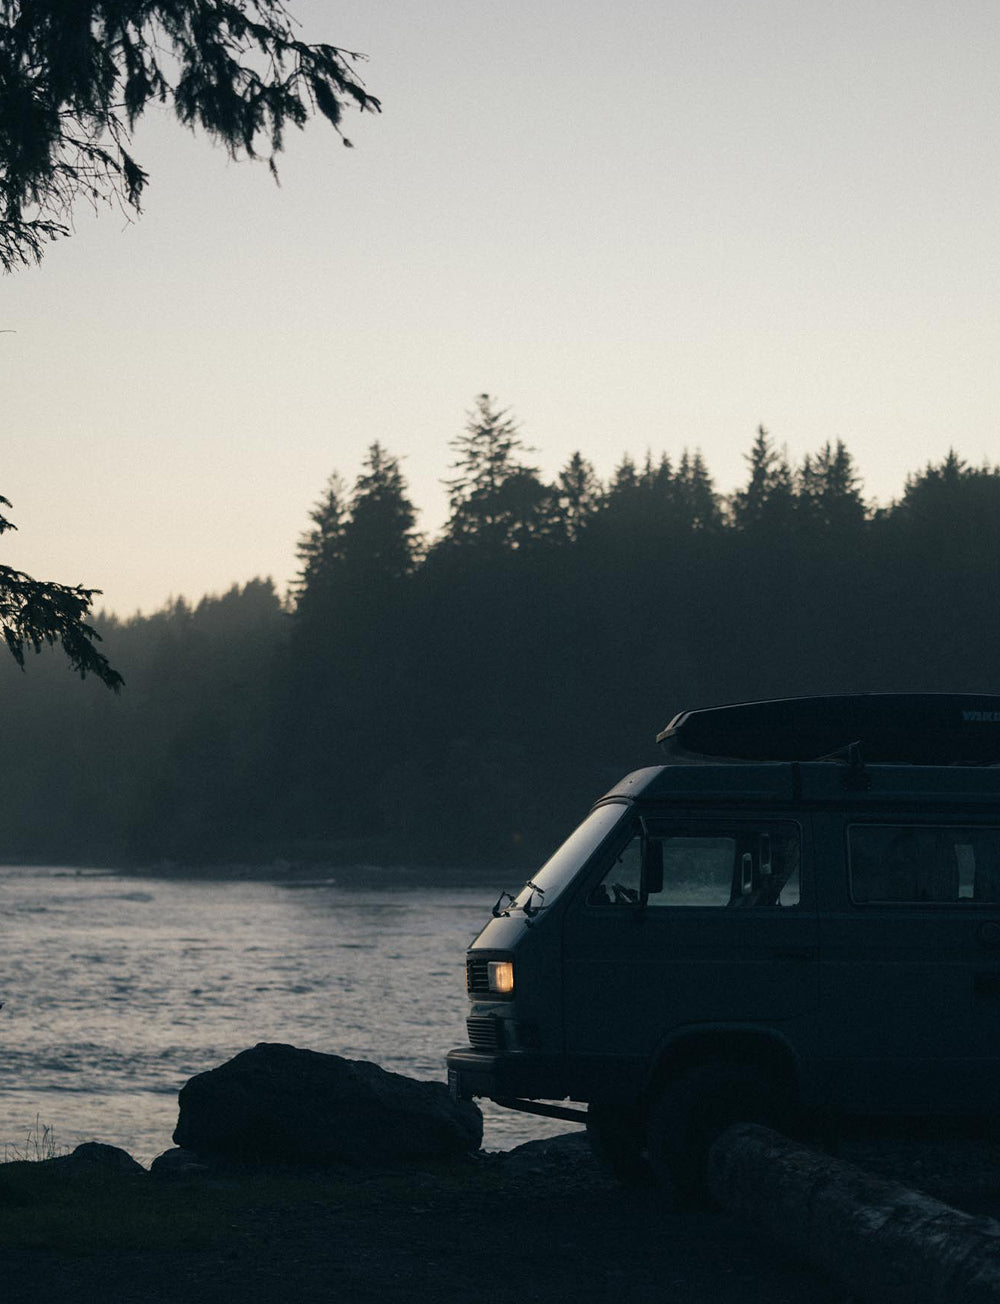 A classic VW Westy sits by the water during blue hour with trees and ocean in the background.